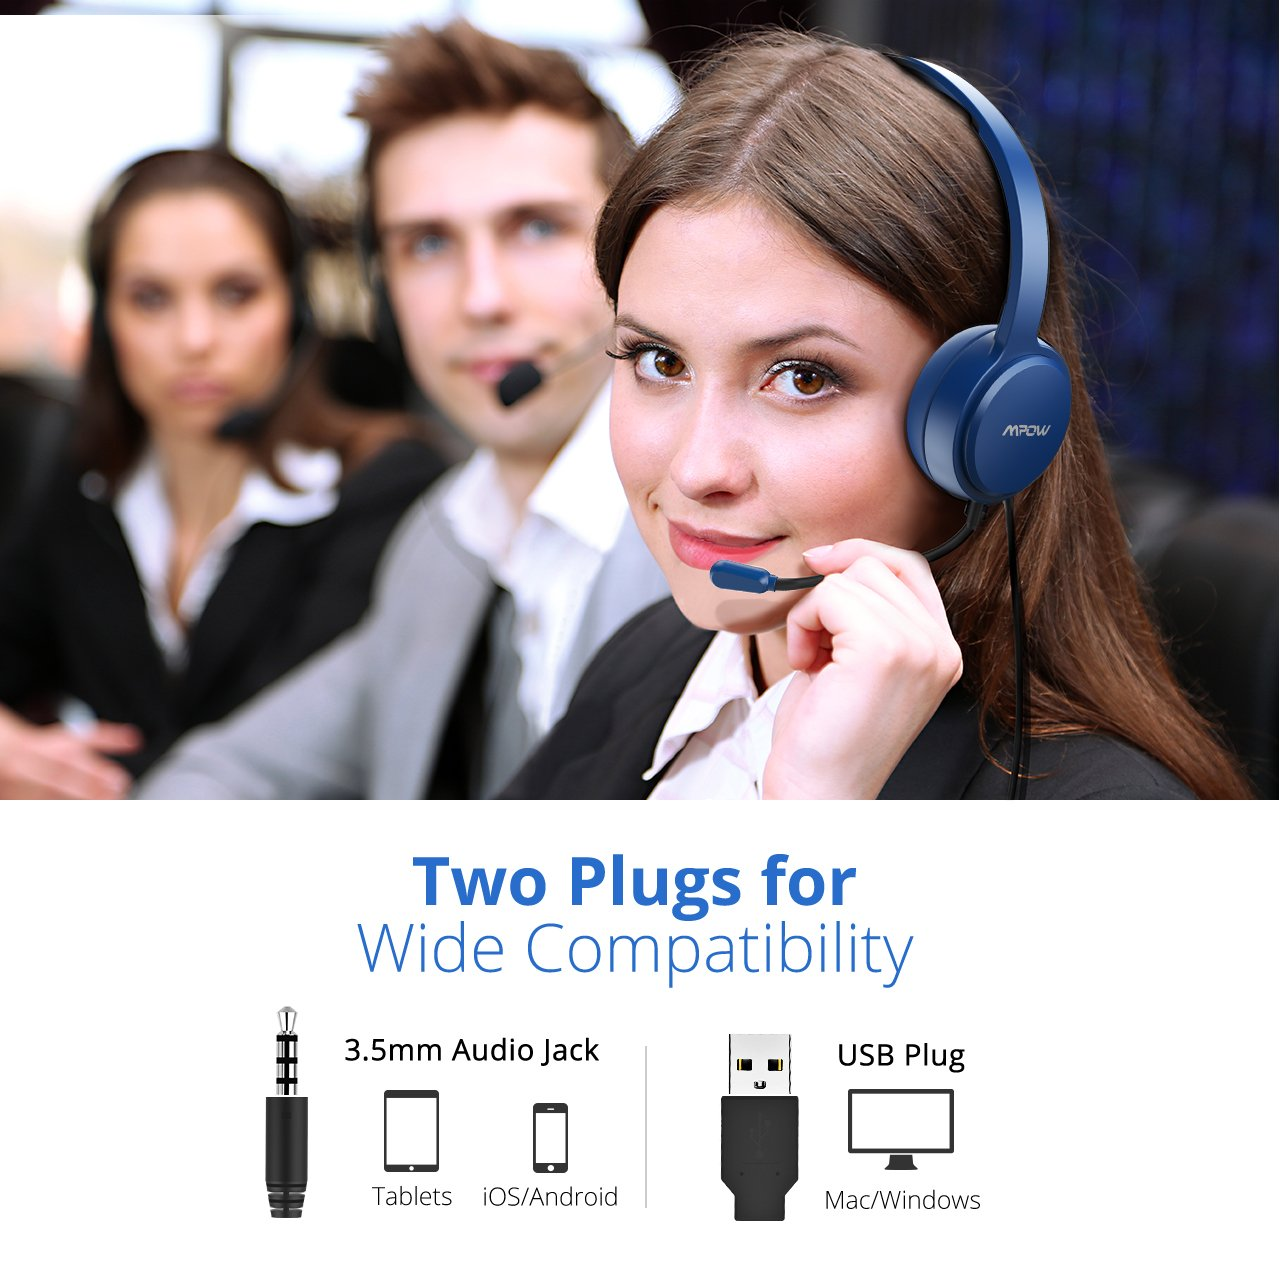 Mpow 071 USB Headset/3.5mm Computer Headset with Microphone Noise Cancelling, Lightweight PC Headset Wired Headphones, Business Headset for Skype, Webinar, Phone, Call Center by Mpow (Image #7)